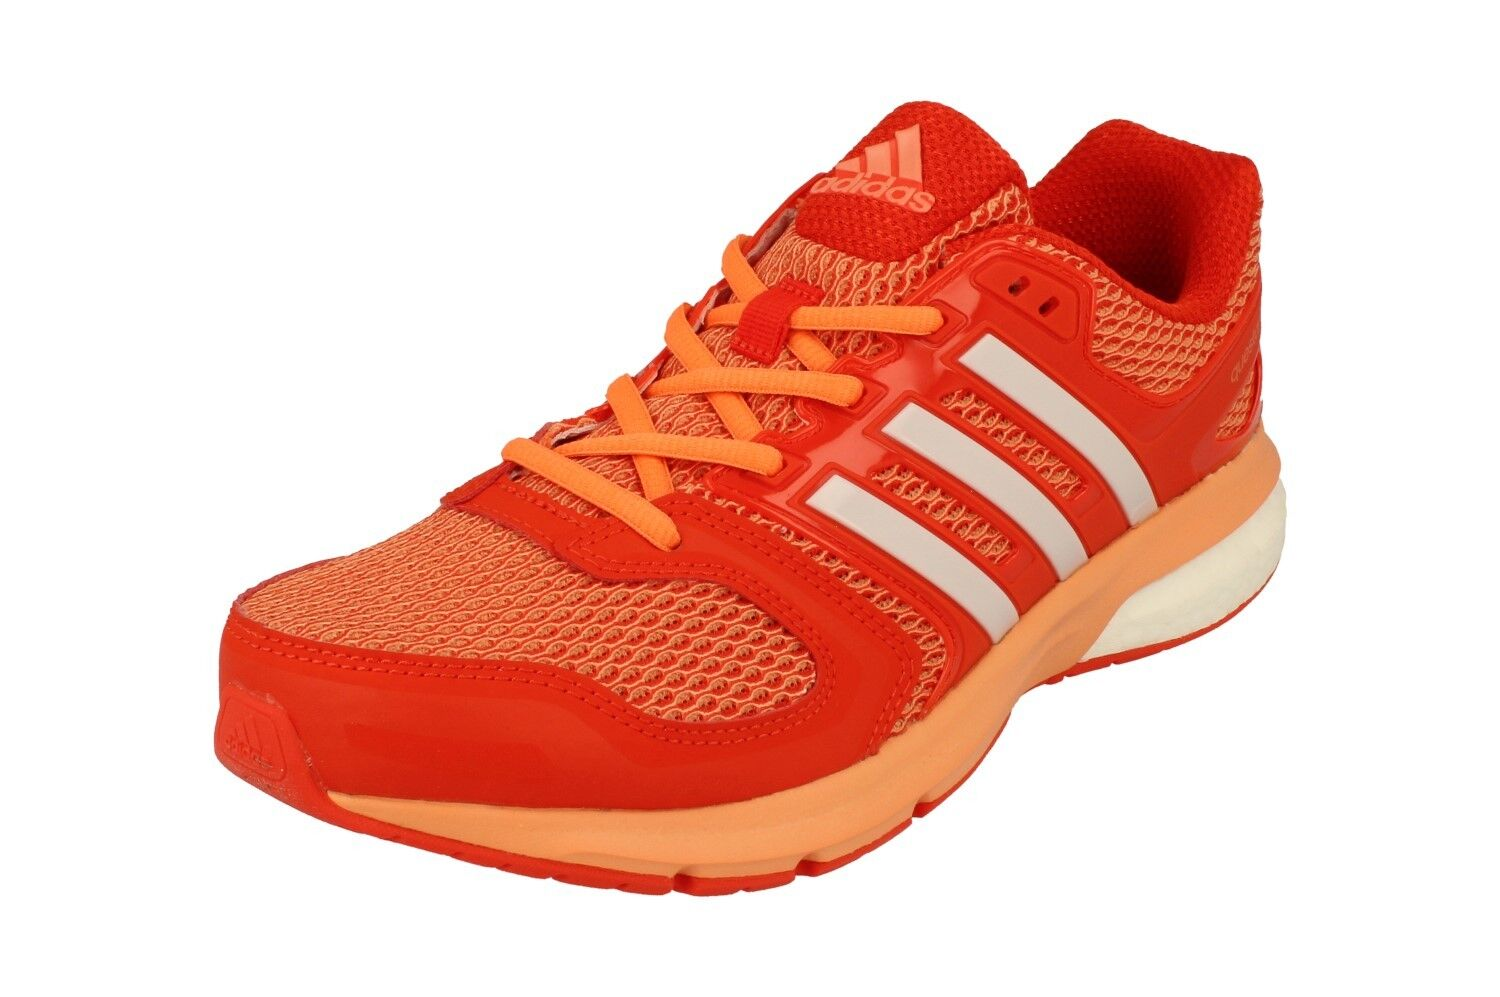 Adidas Questar Boost Womens Running Trainers Sneakers S76940